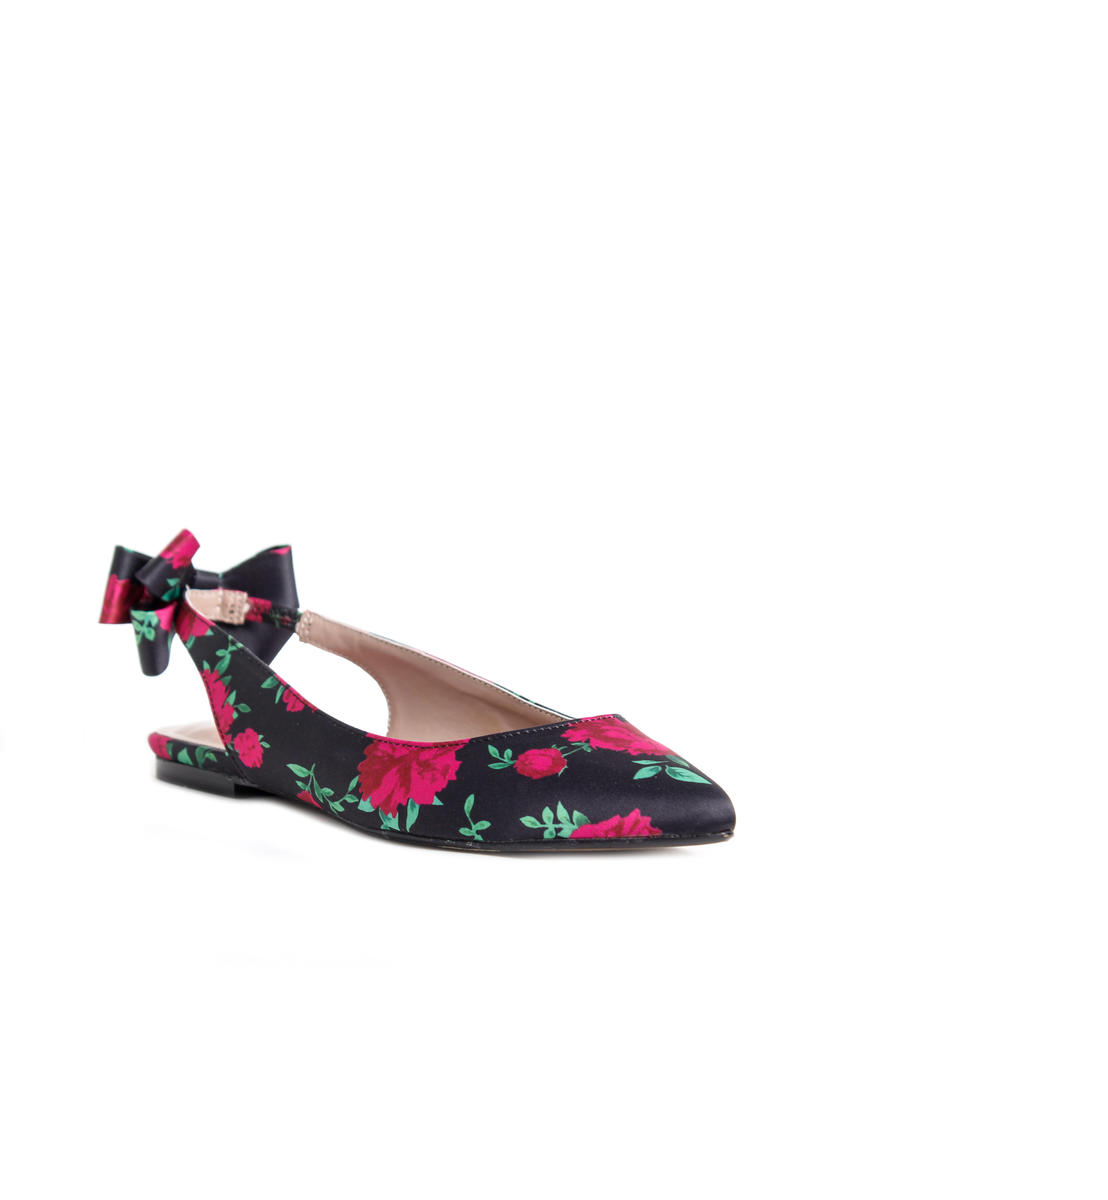 Pointy Flat Bow Back Ballet Shoe